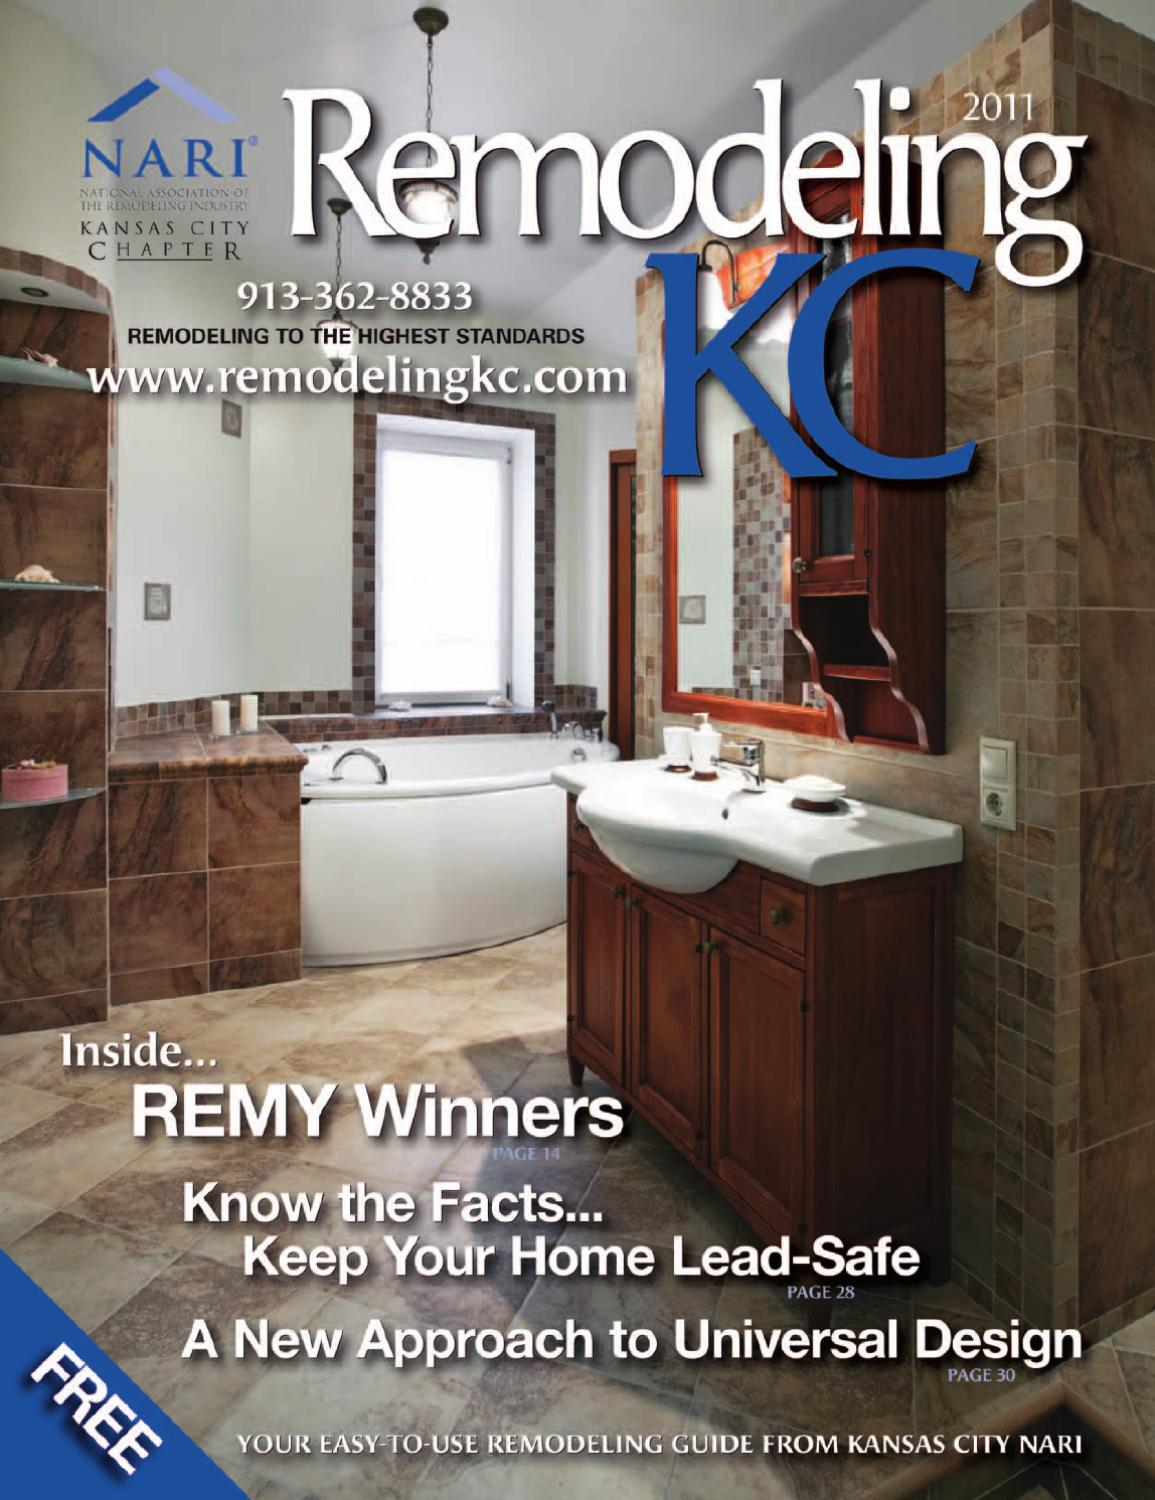 Remodeling Kansas City NARI GUIDE 2011 By Network Communications Inc